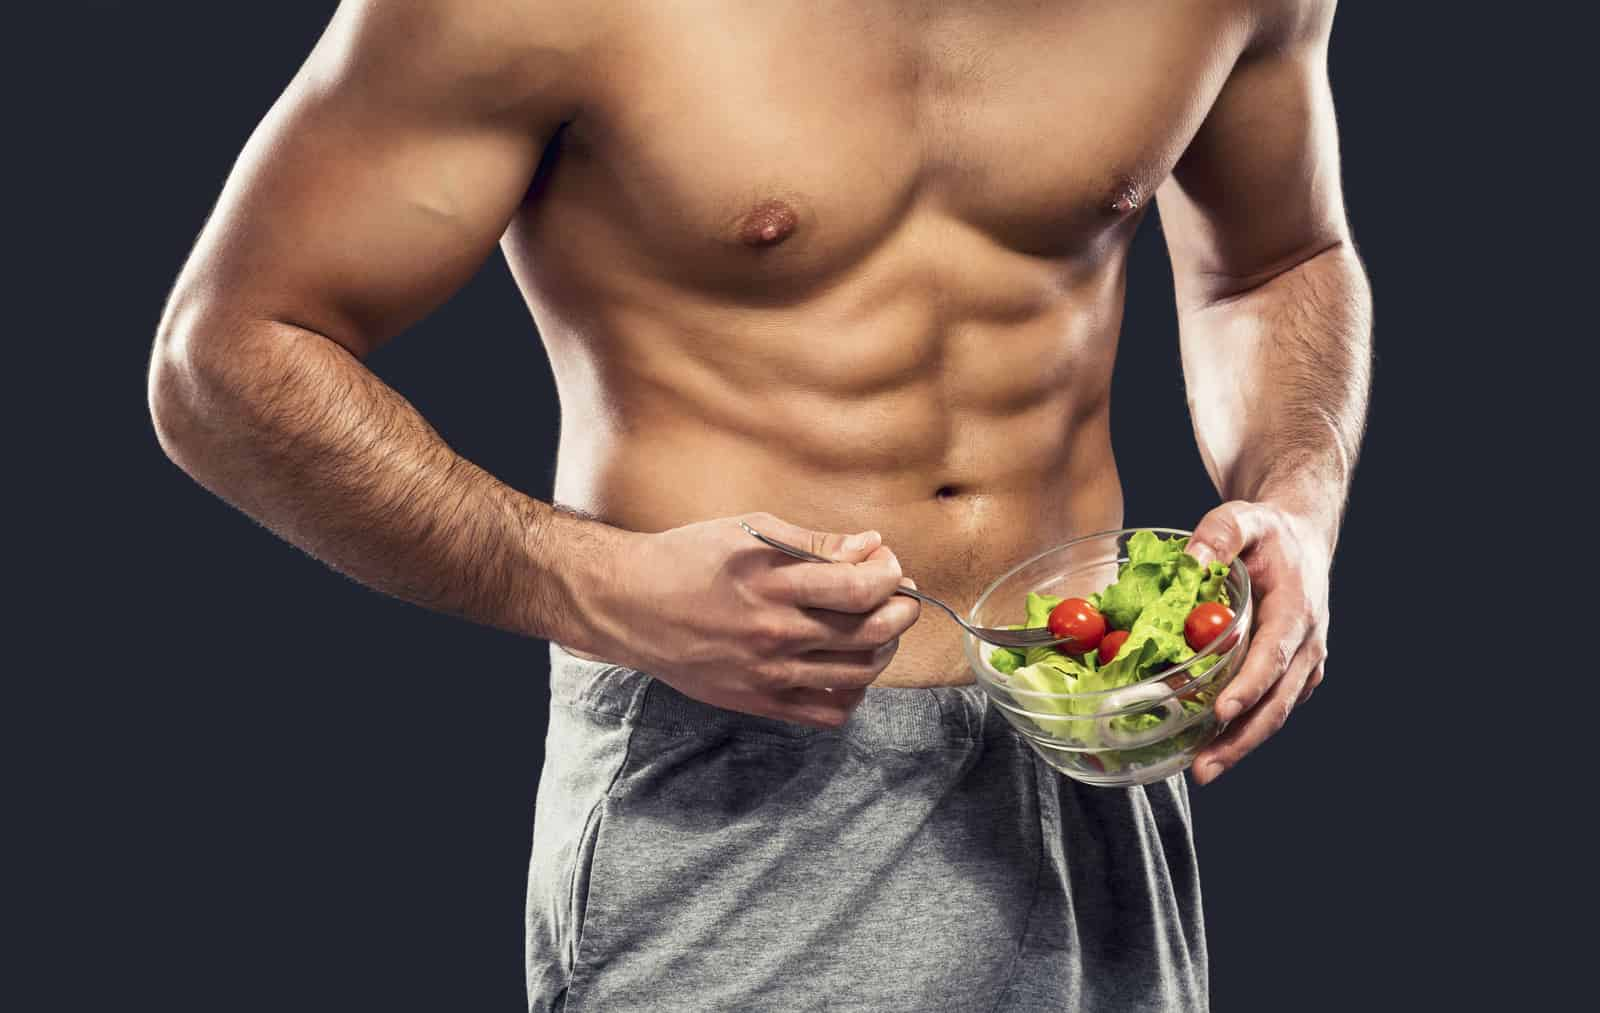 rowing machine workout weight loss results on a male holding a bowl of salad